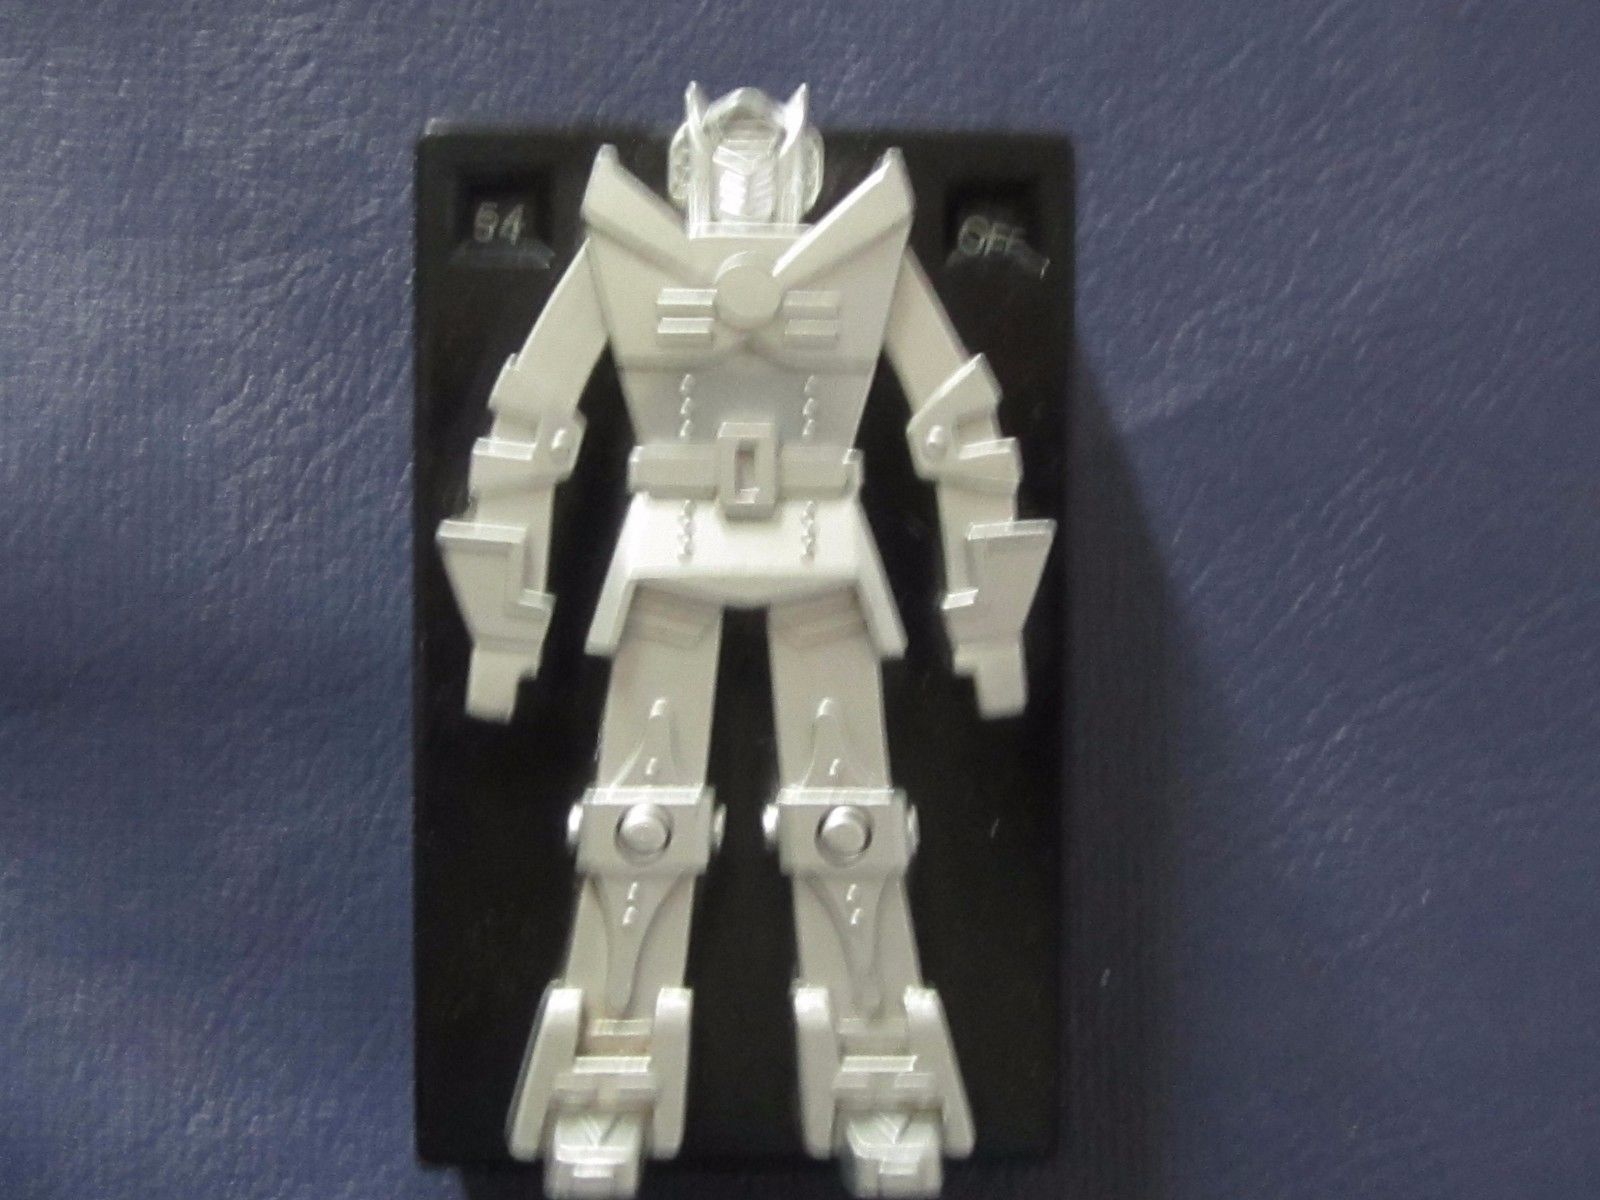 Radio Shack Figure (1980s): 1 listing